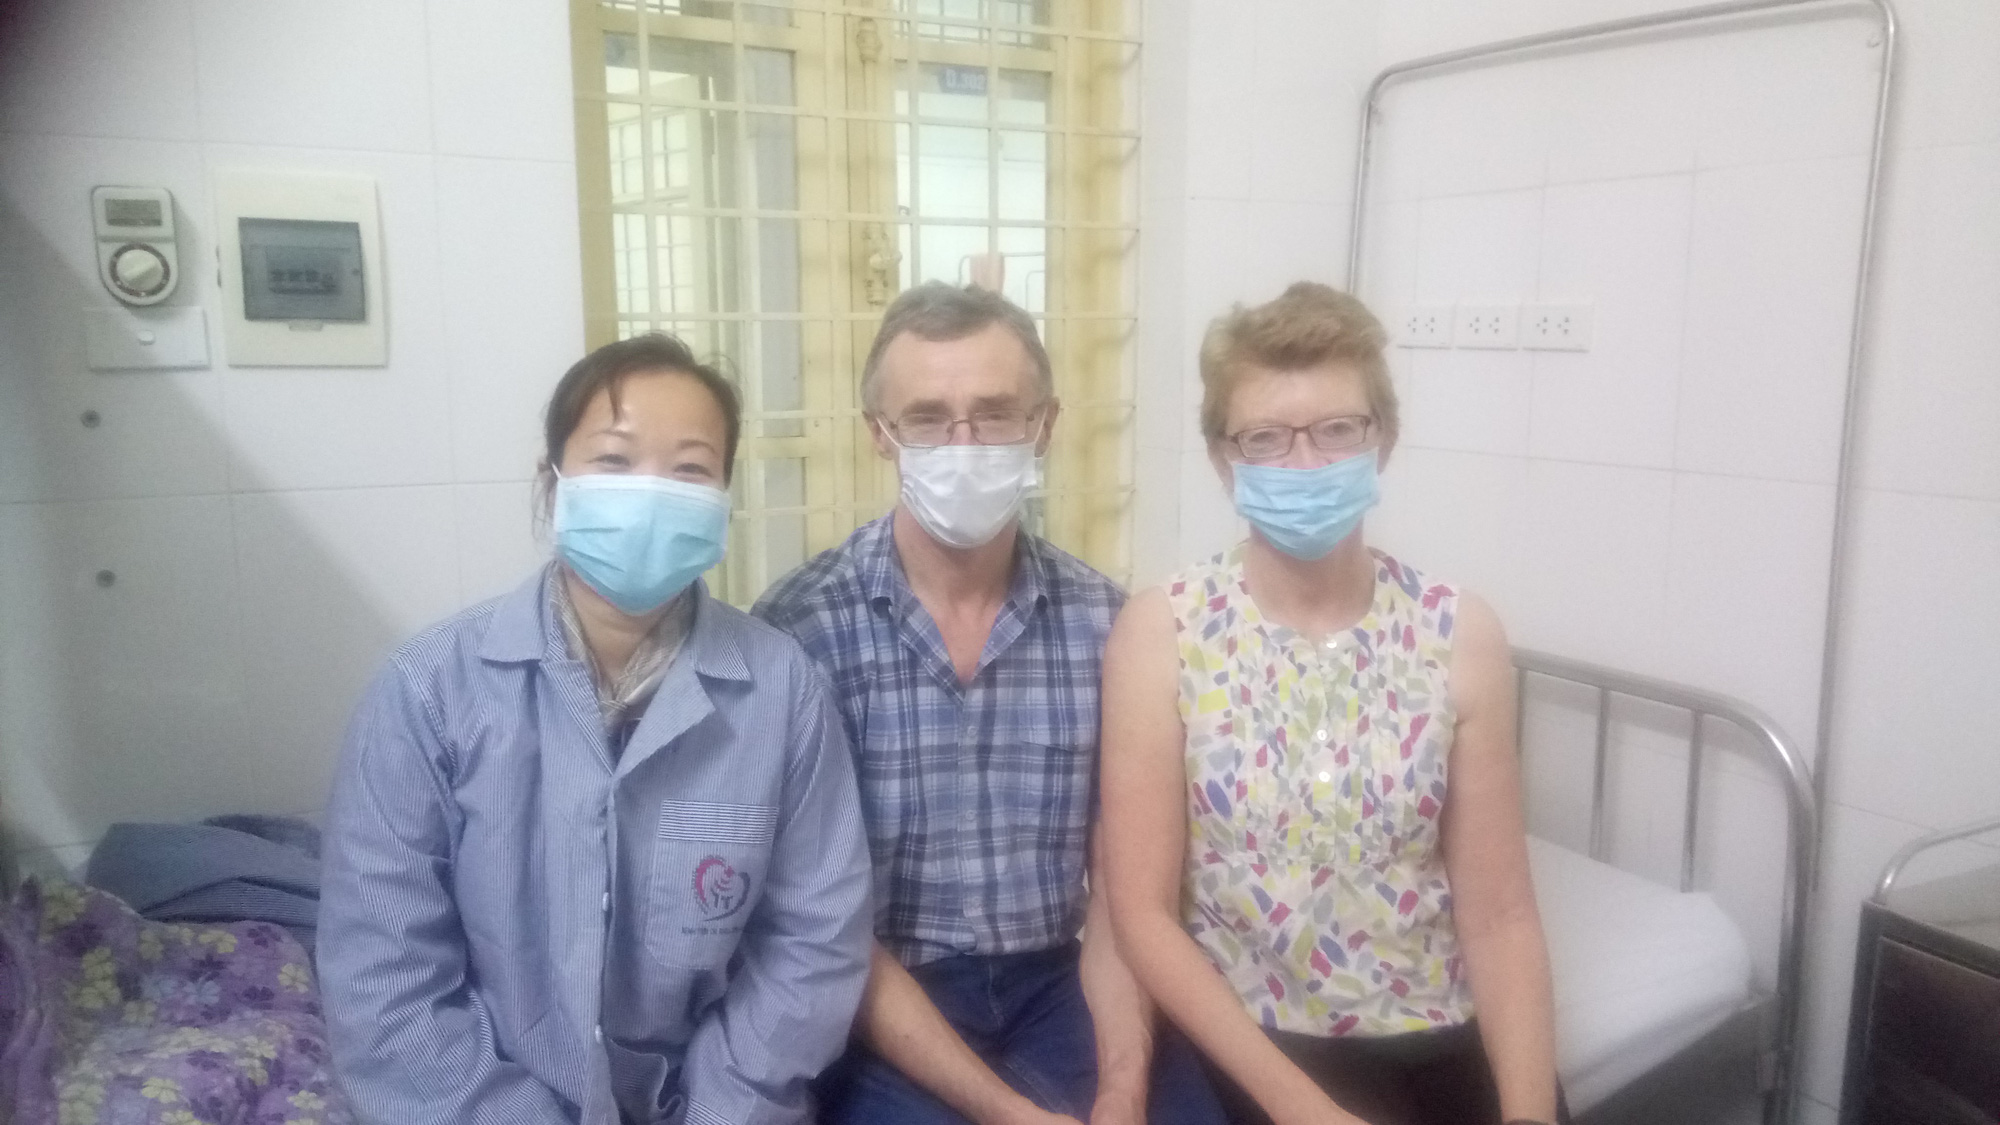 Cath and David Butler are seen with N.T.H.L. at Dong Da General Hospital in Hanoi, Vietnam in this supplied photo.